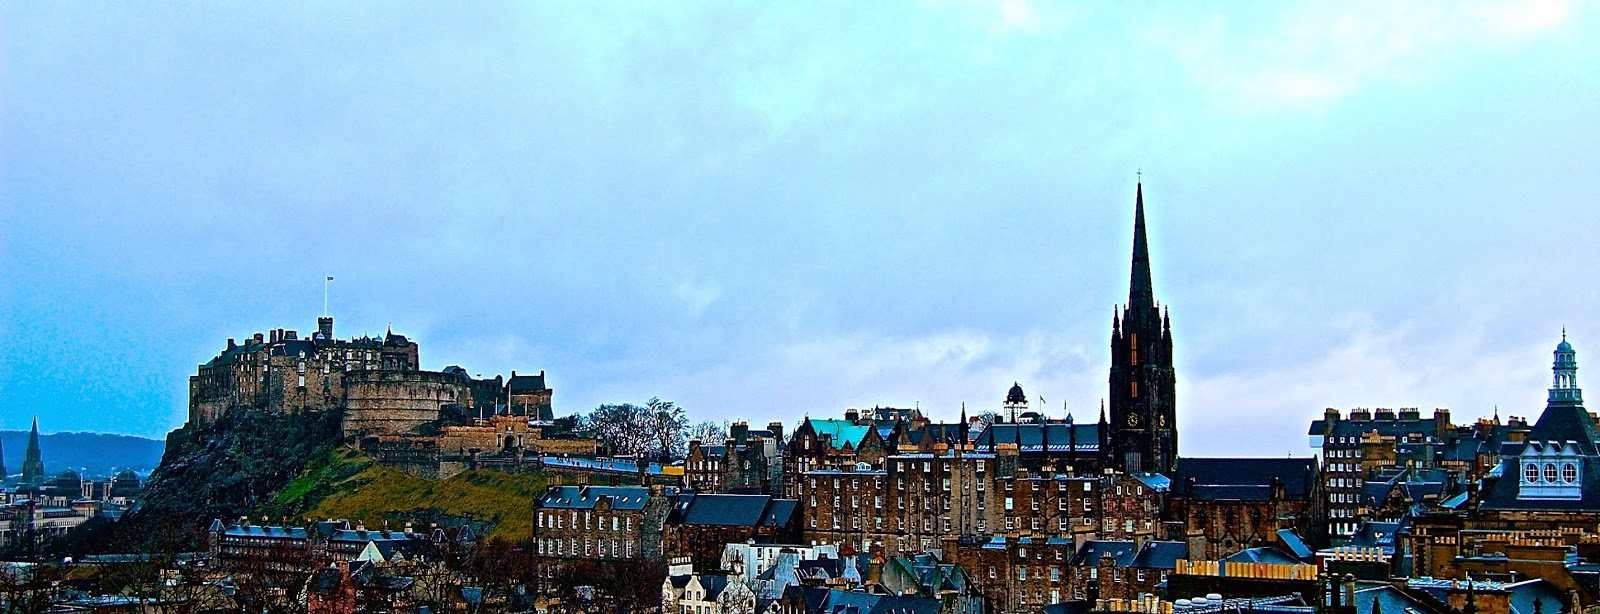 Skyline of Royal Mile in Edinburgh, Scotland; Edinburgh Castle; St. Giles' Cathedral